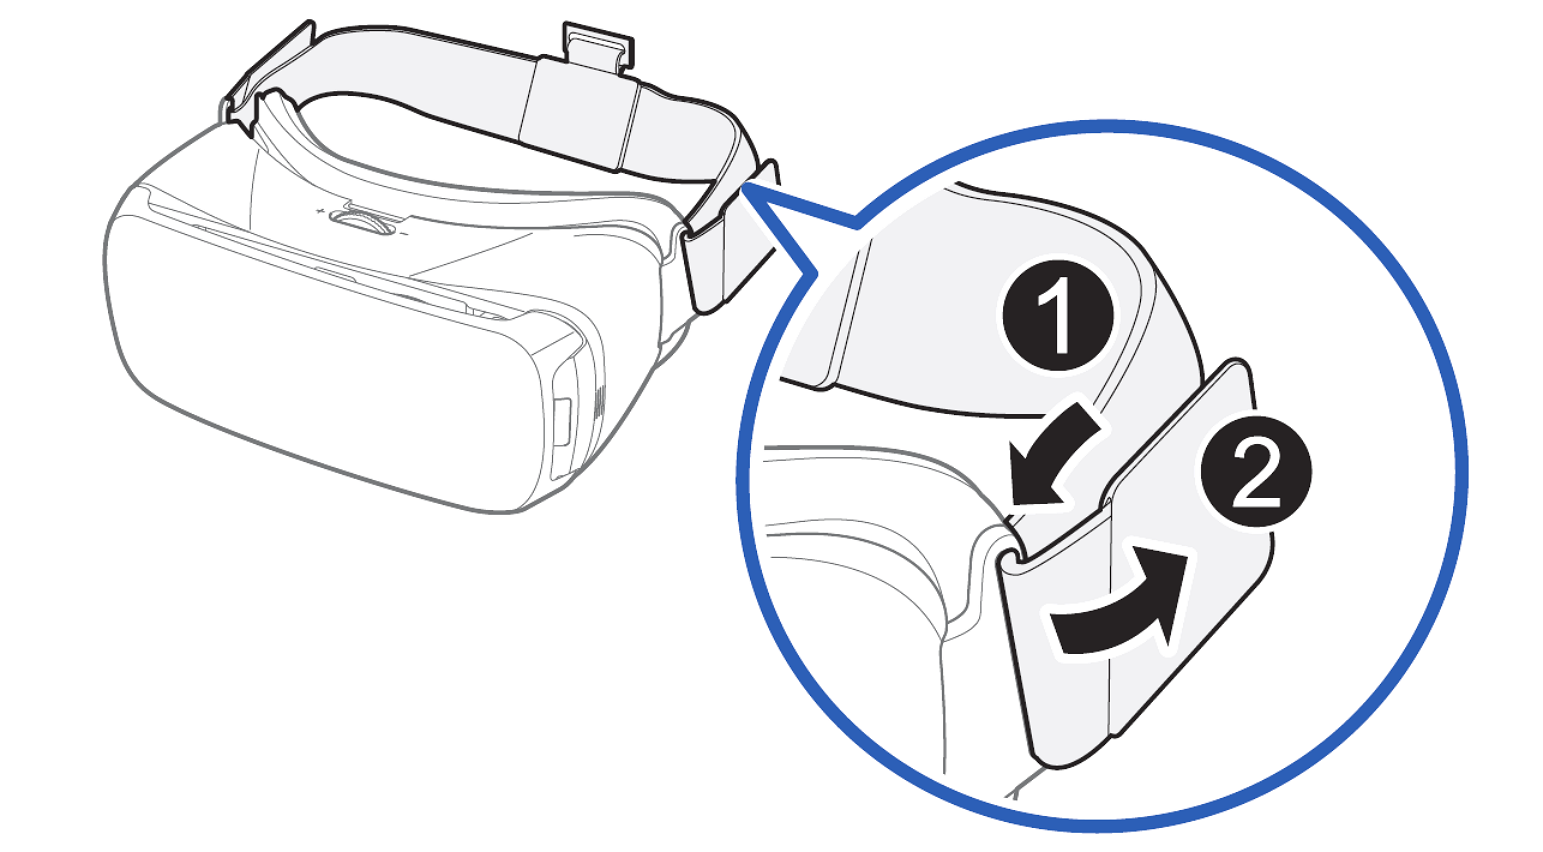 Samsung Gear Vr Manual And Tutorial